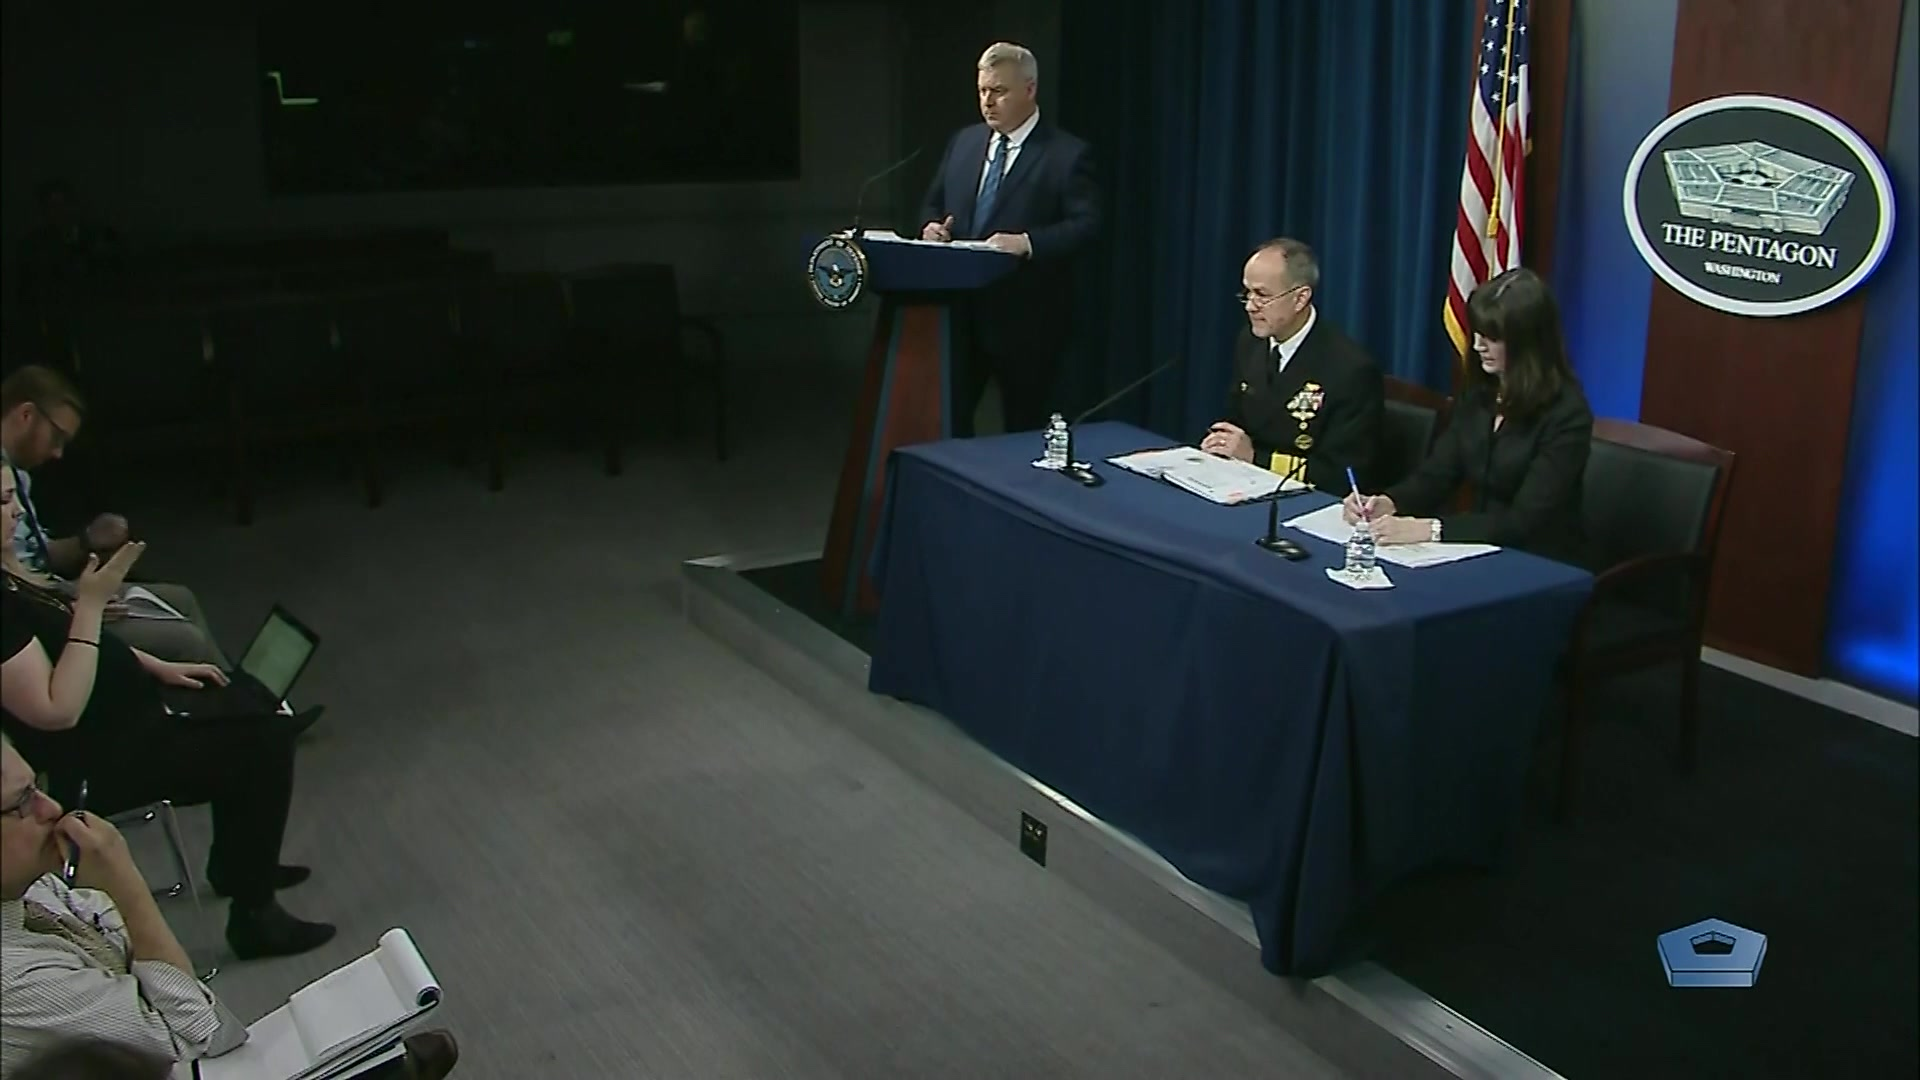 A sailor and civilian sit at a table in front of reporters, while another civilian stands at a lectern.